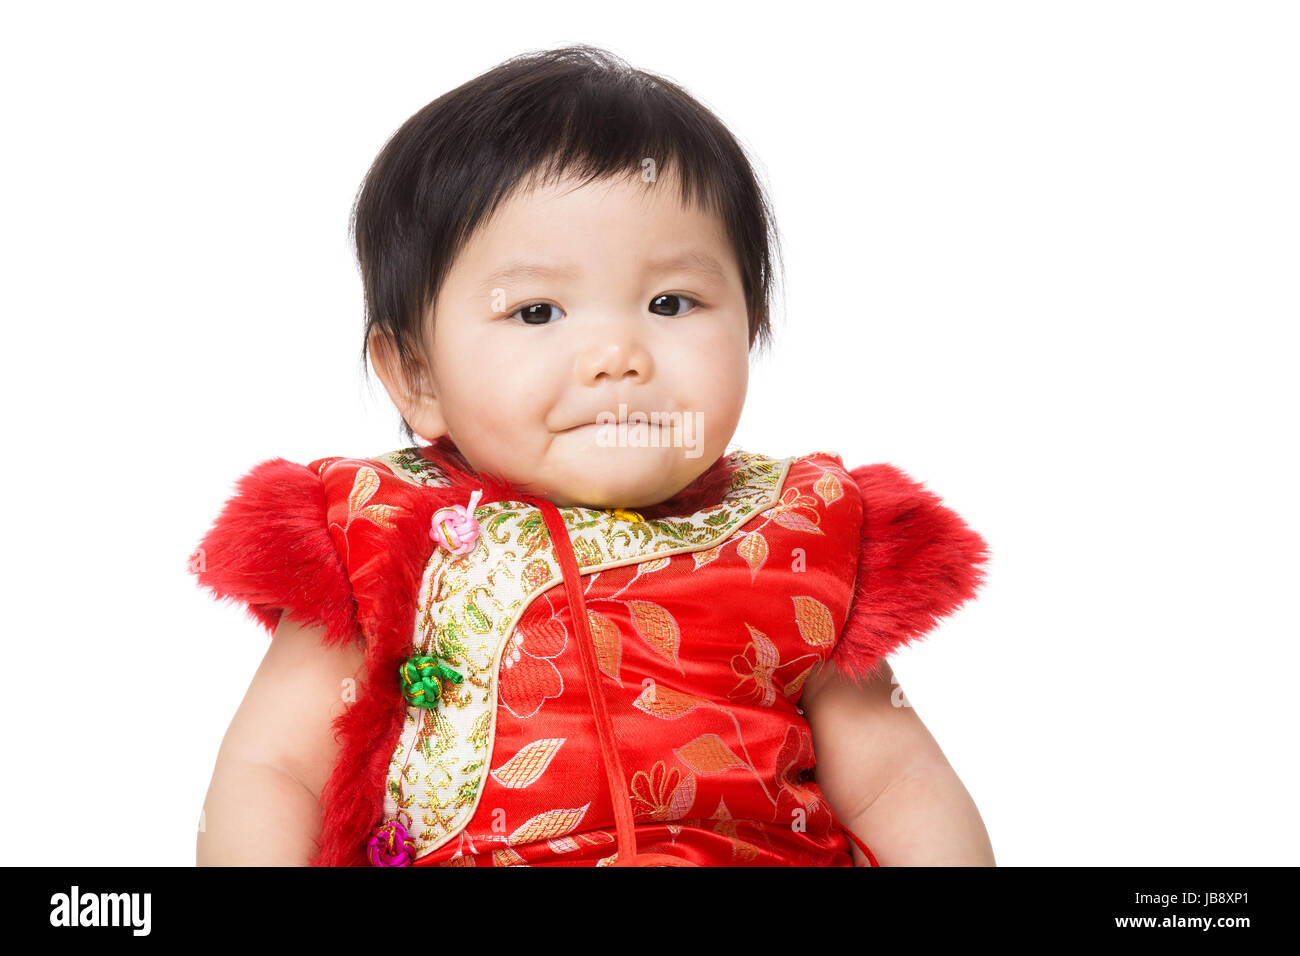 1d4c1f308 Chinese baby girl with traditional costume for new year Stock Photo ...